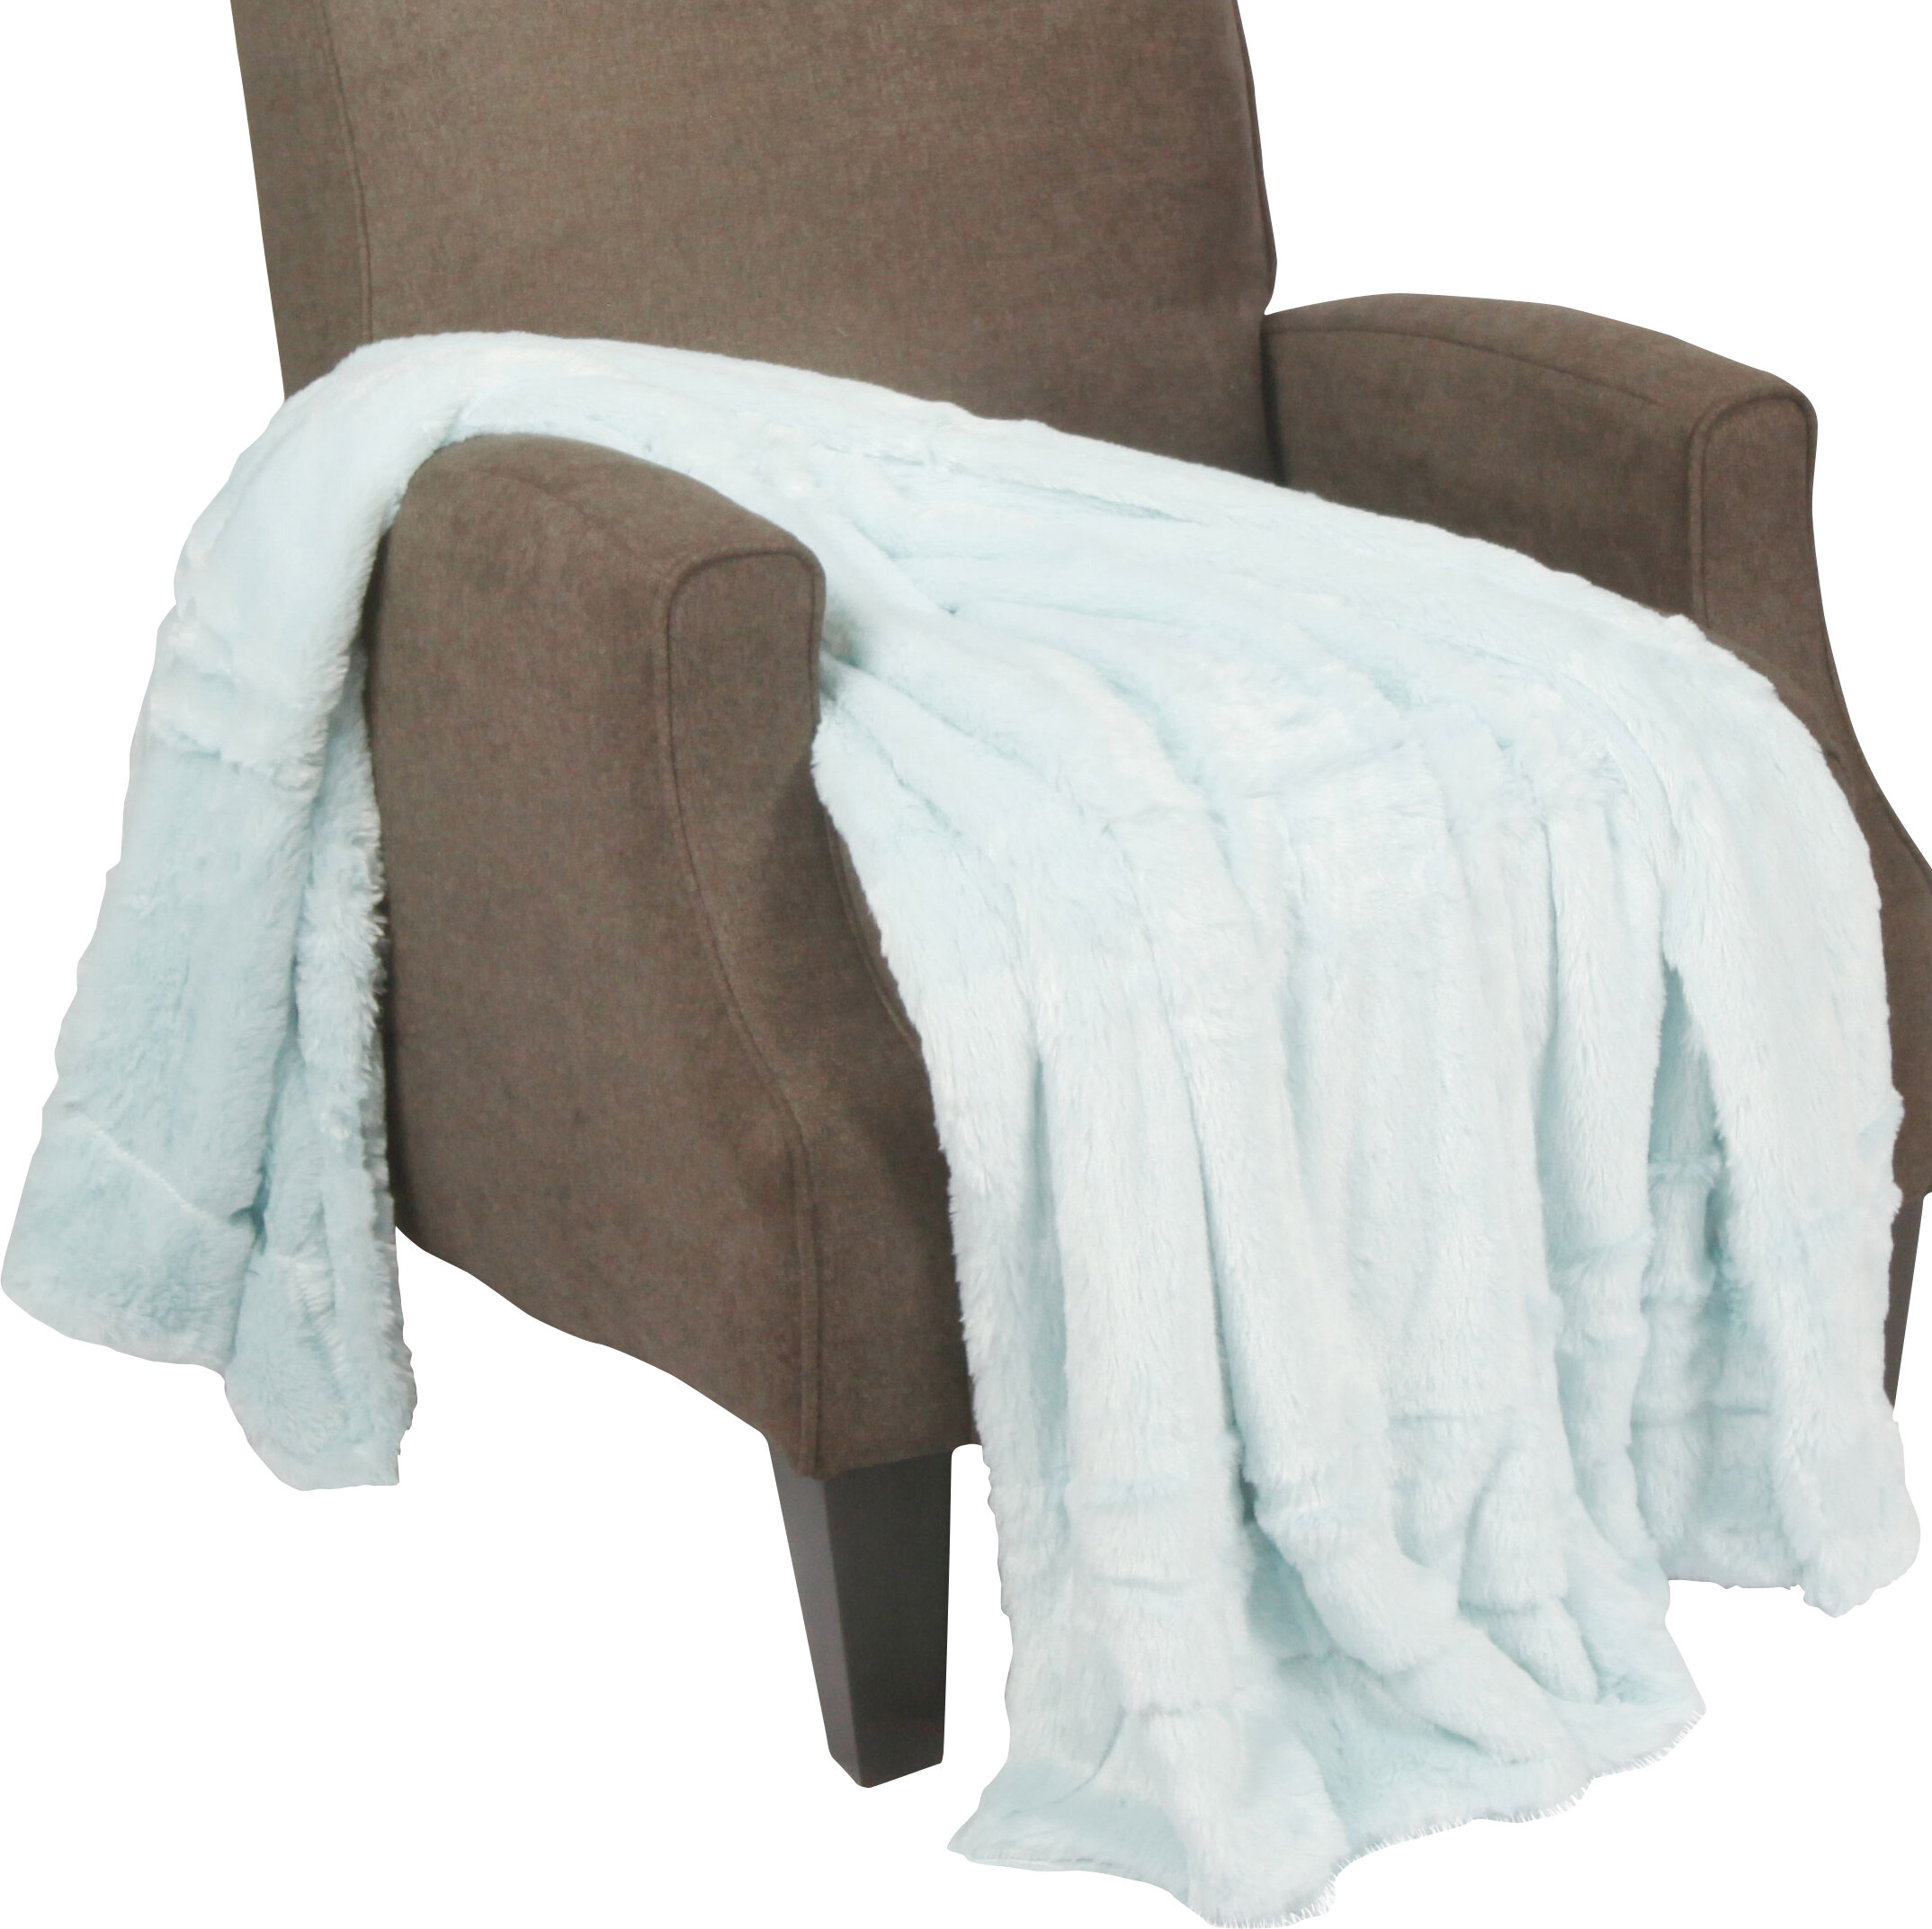 adams shabby chic throw couch summer product blanket img ruffle